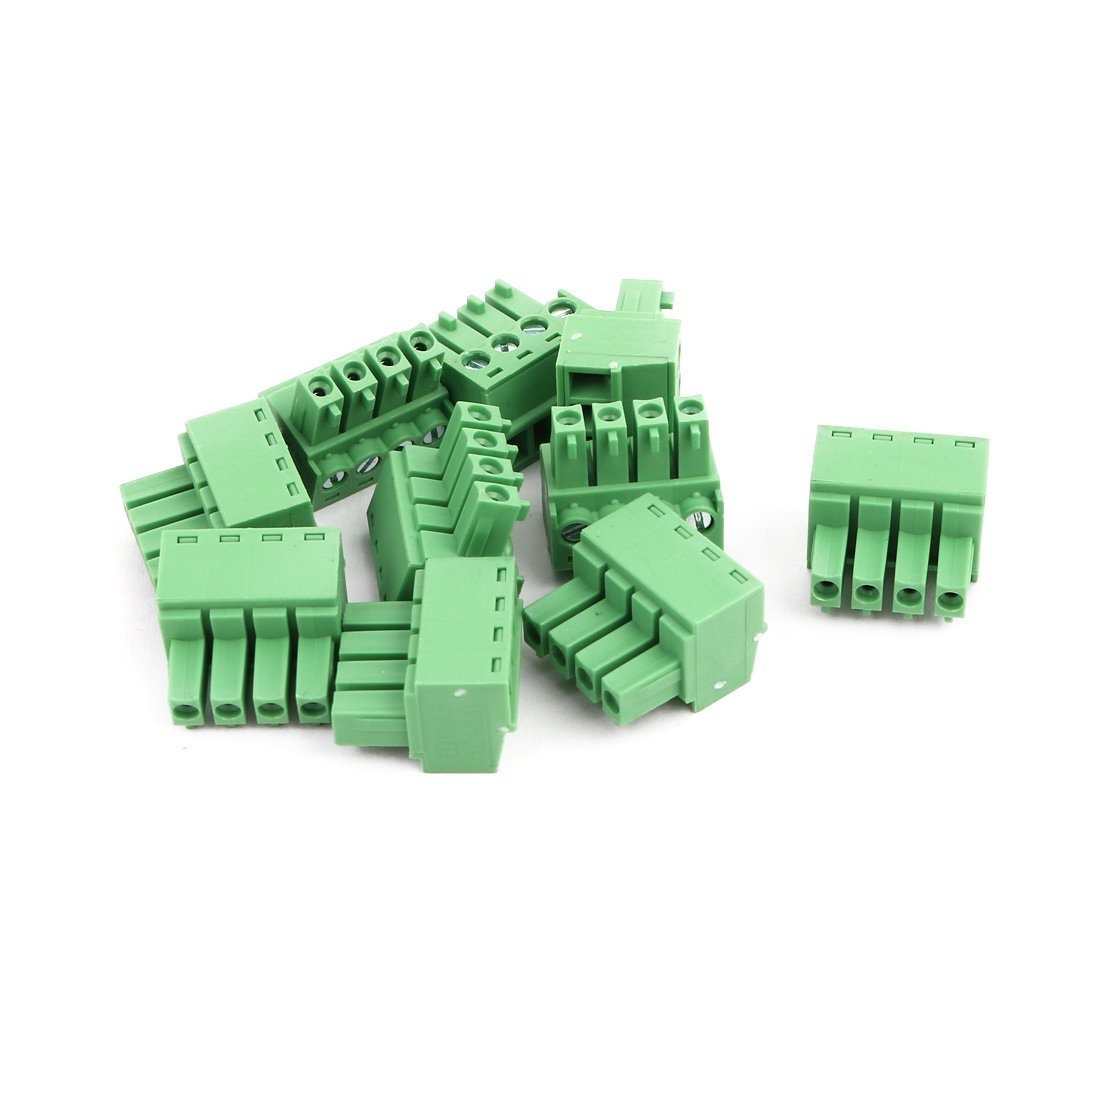 uxcell 10Pcs AC 300V 8A 3.81mm Pitch 4P Terminal Block Wire Connection for PCB Mounting